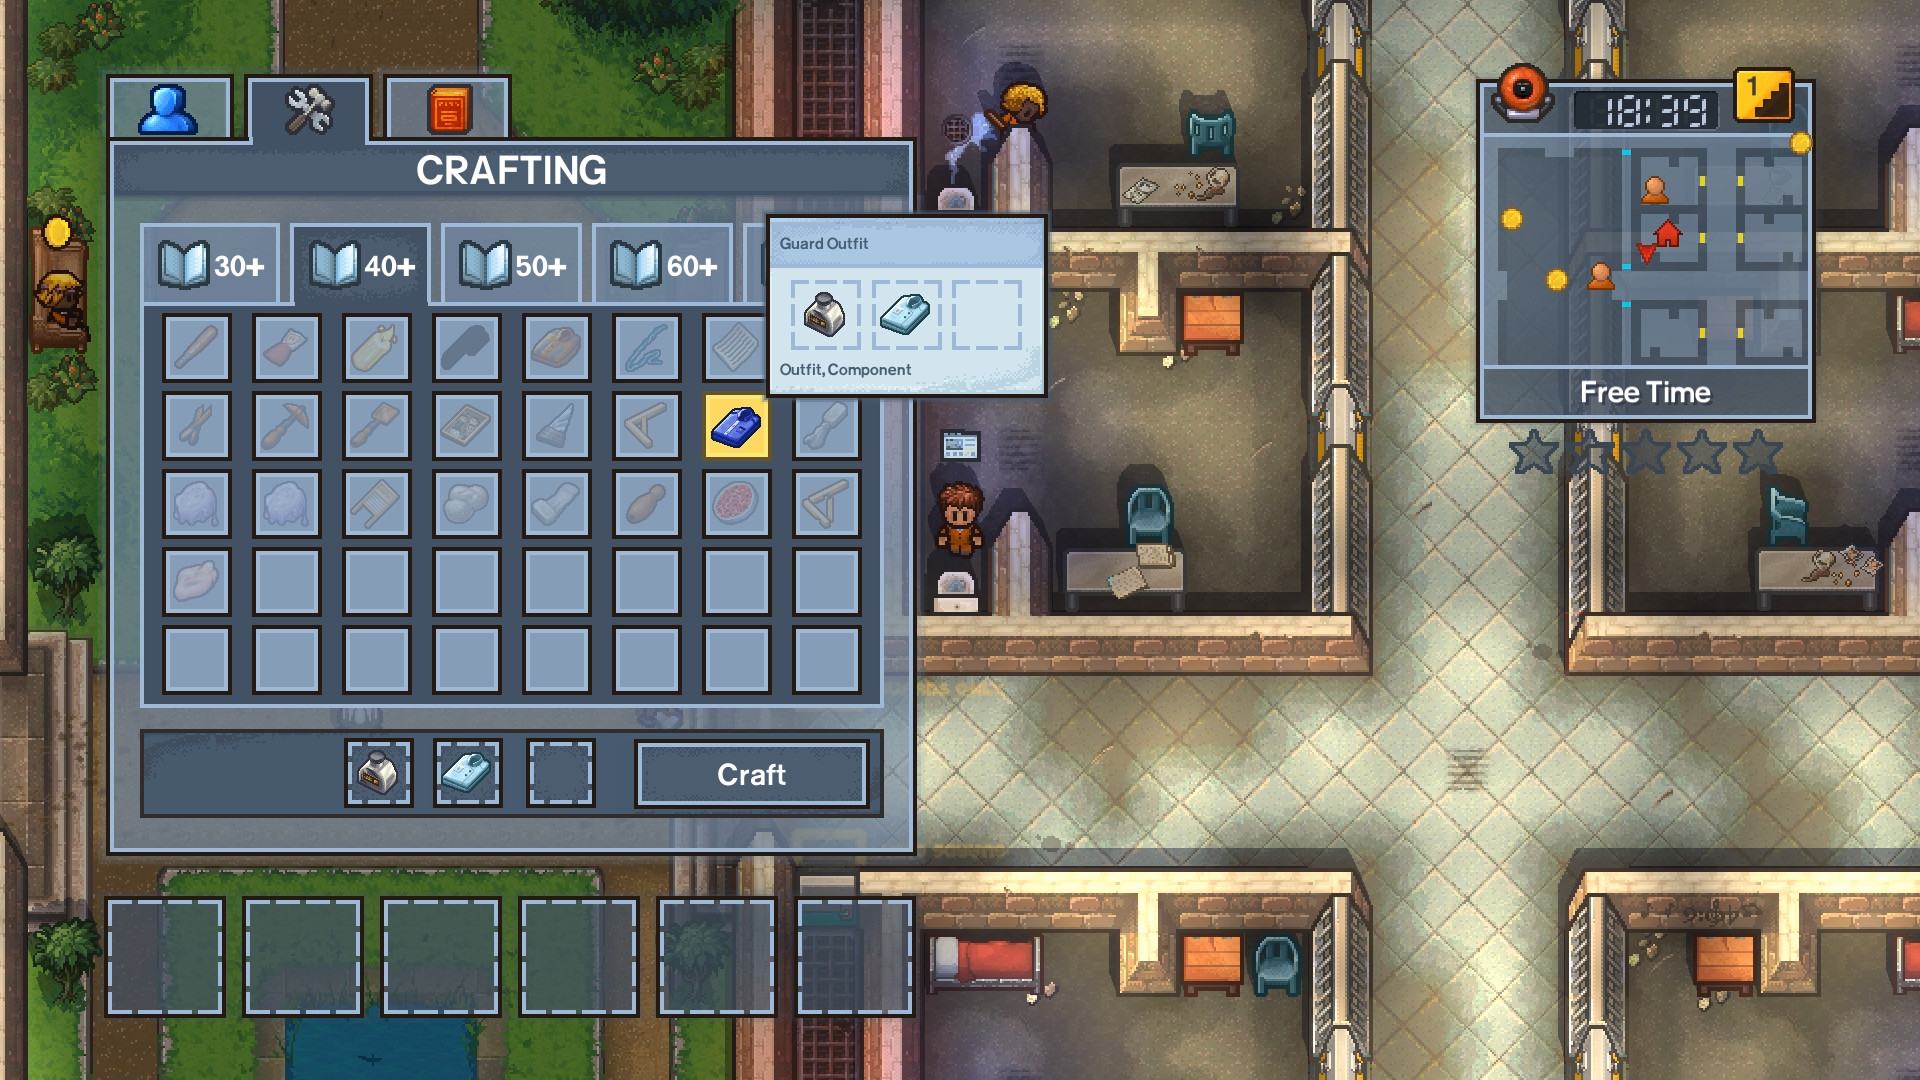 Play the escapists without download